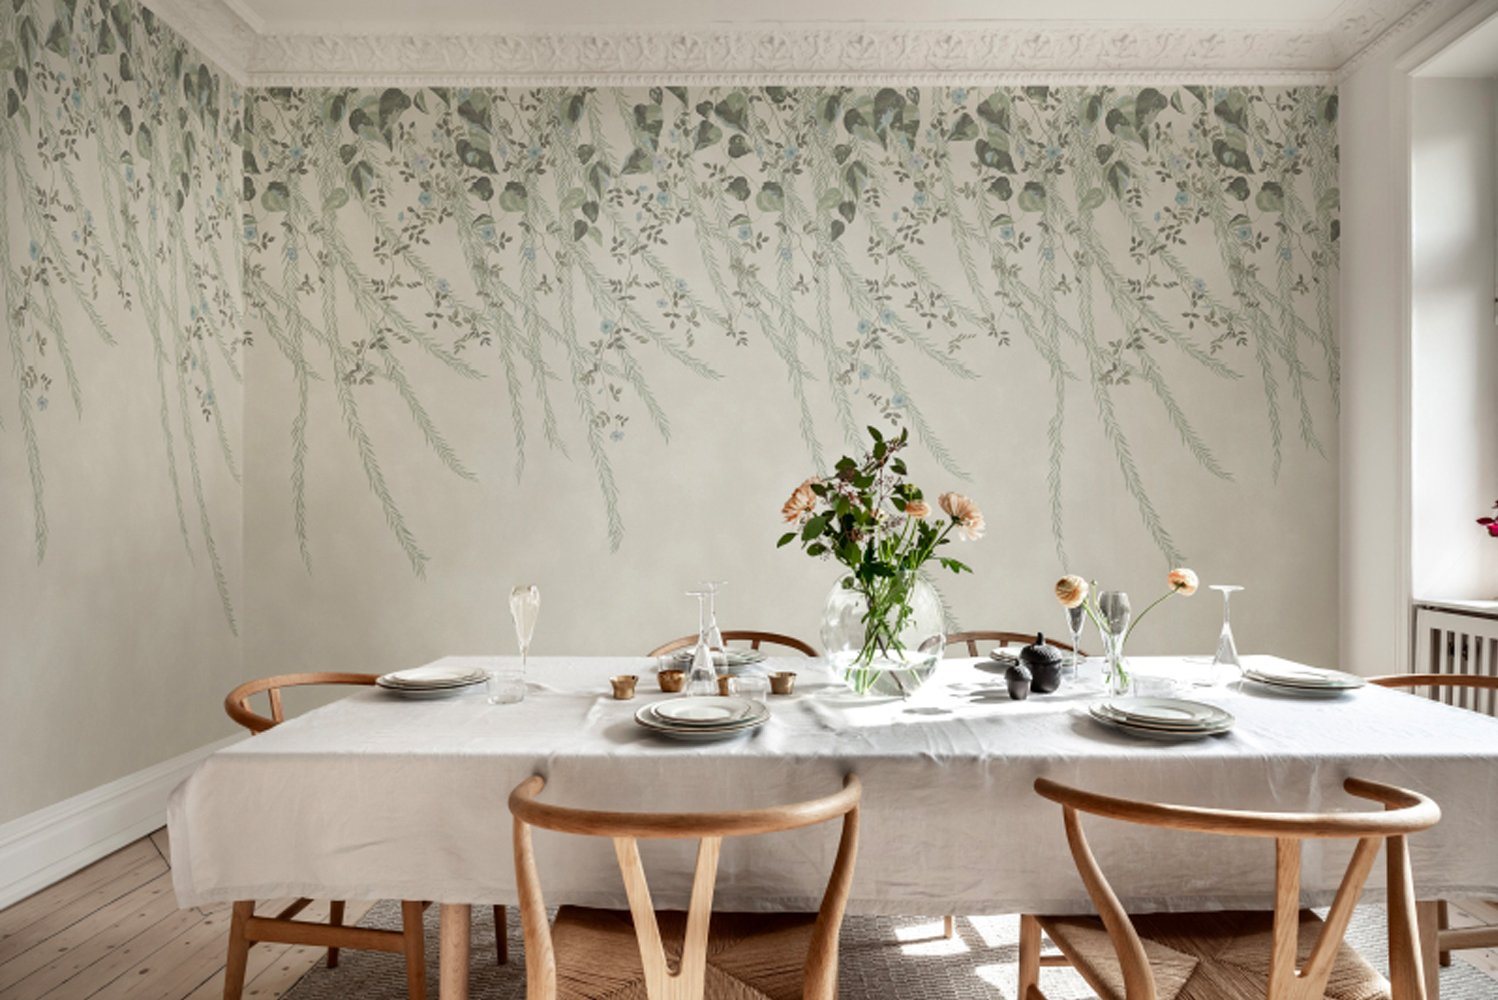 """Chinoiserie comes from the French word chinois, meaning """"Chinese,"""" or """"after the Chinese taste"""" and was created in Europe during the rise of the trade with the Far East in the 17th and 18th century."""